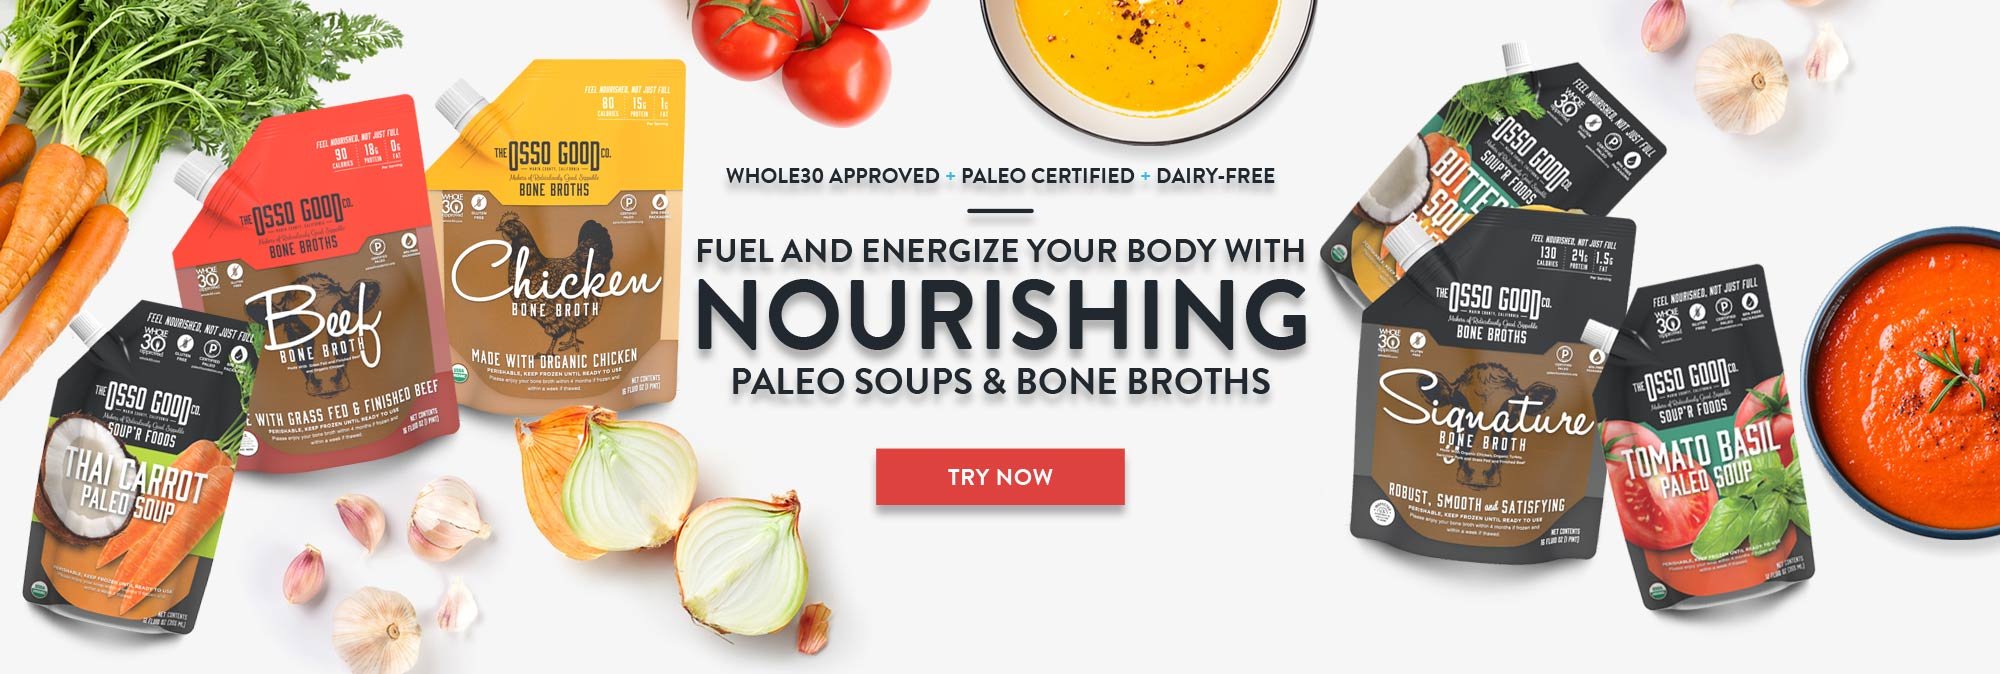 Shop Osso Good Bone Broth